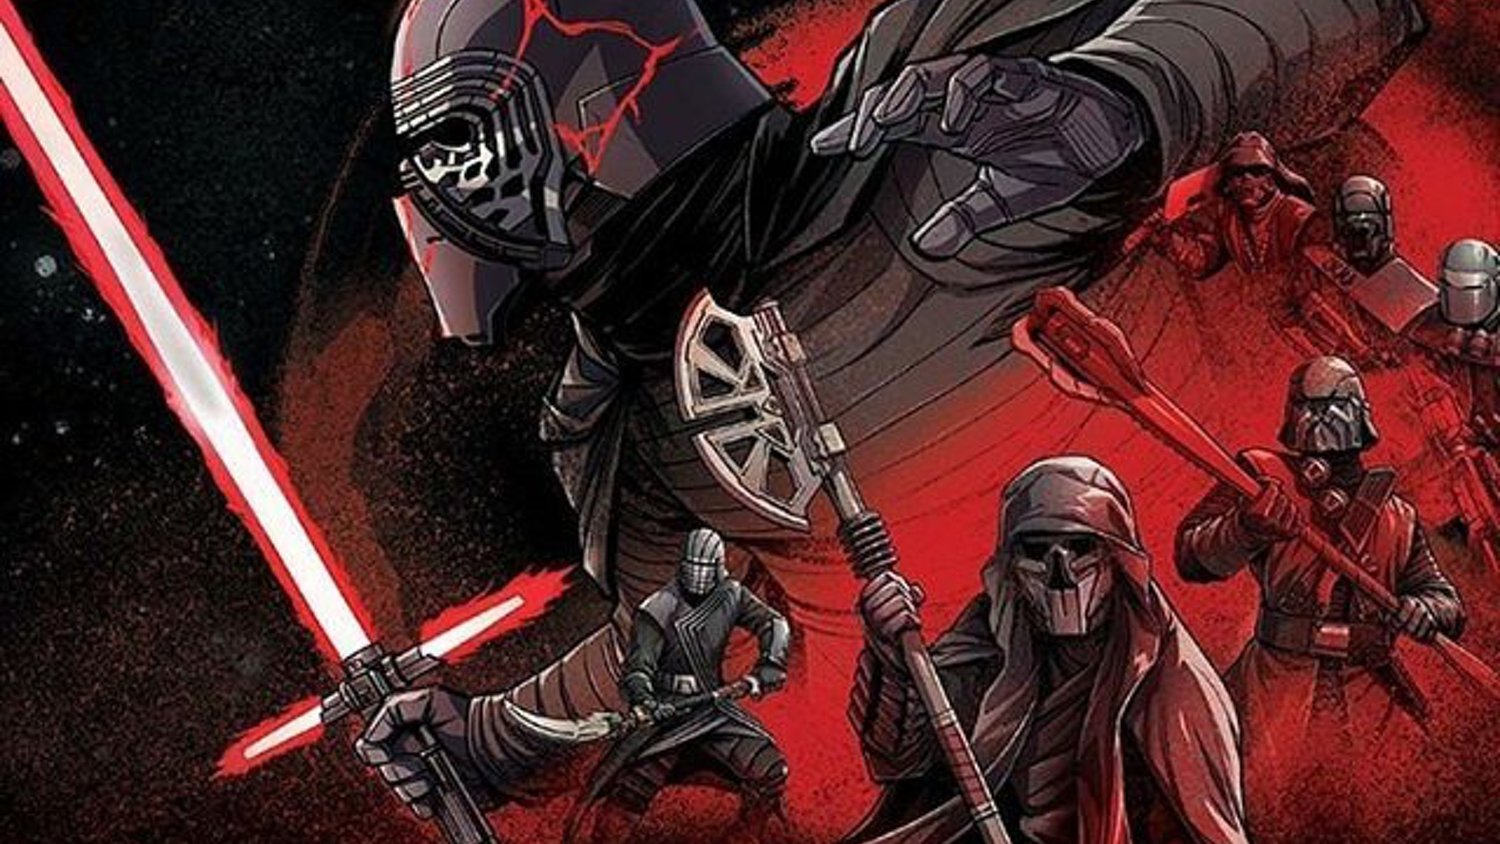 Star Wars The Rise Of Skywalker Promo Art Features Kylo Ren The Knights Of Ren Rey And More Geektyrant